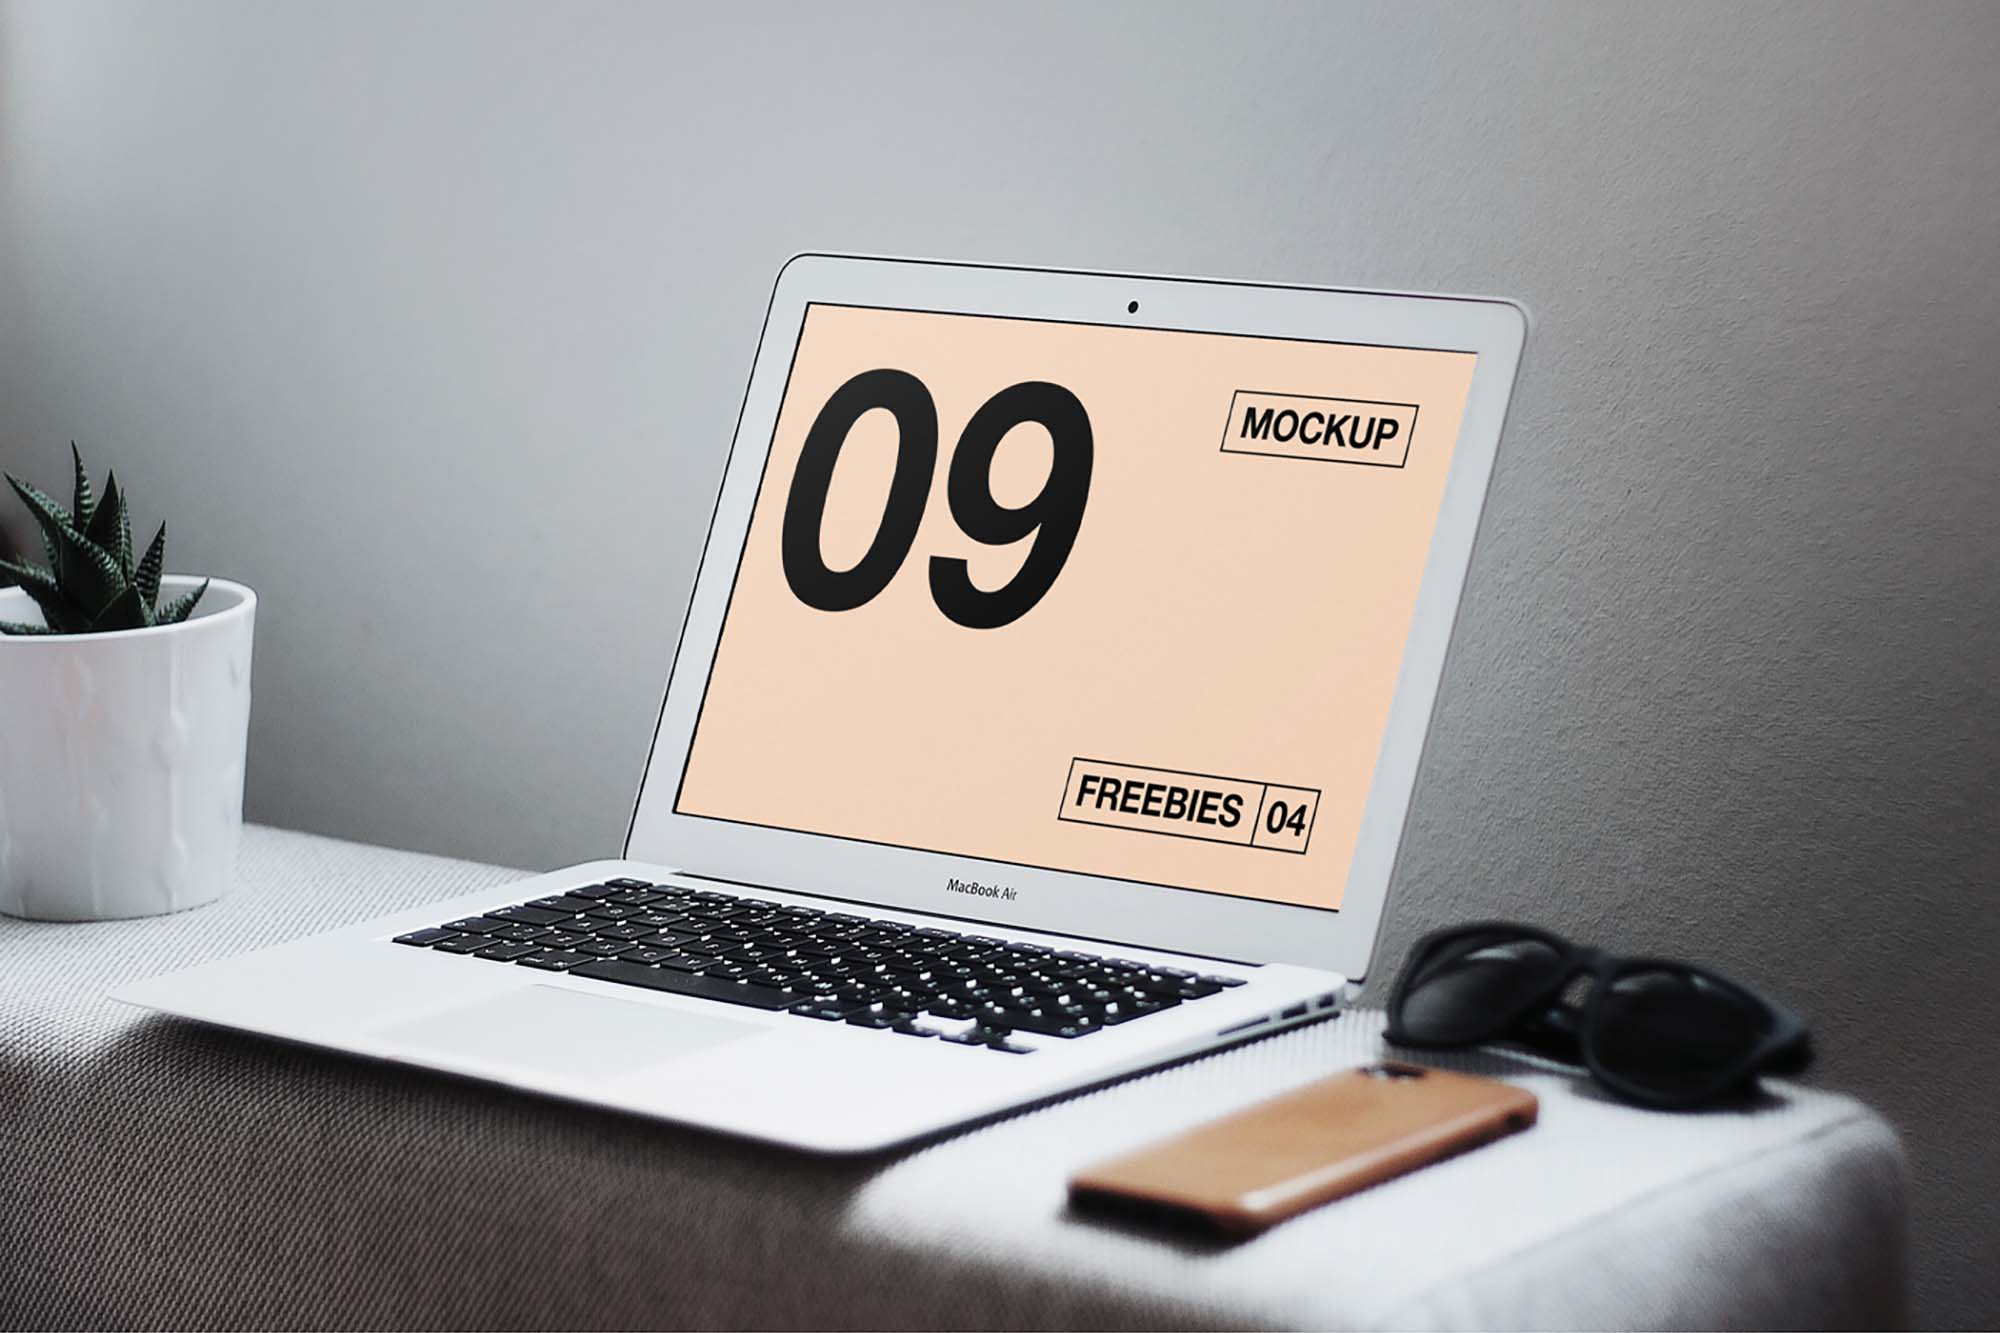 MacBook Air on the Table Mockup